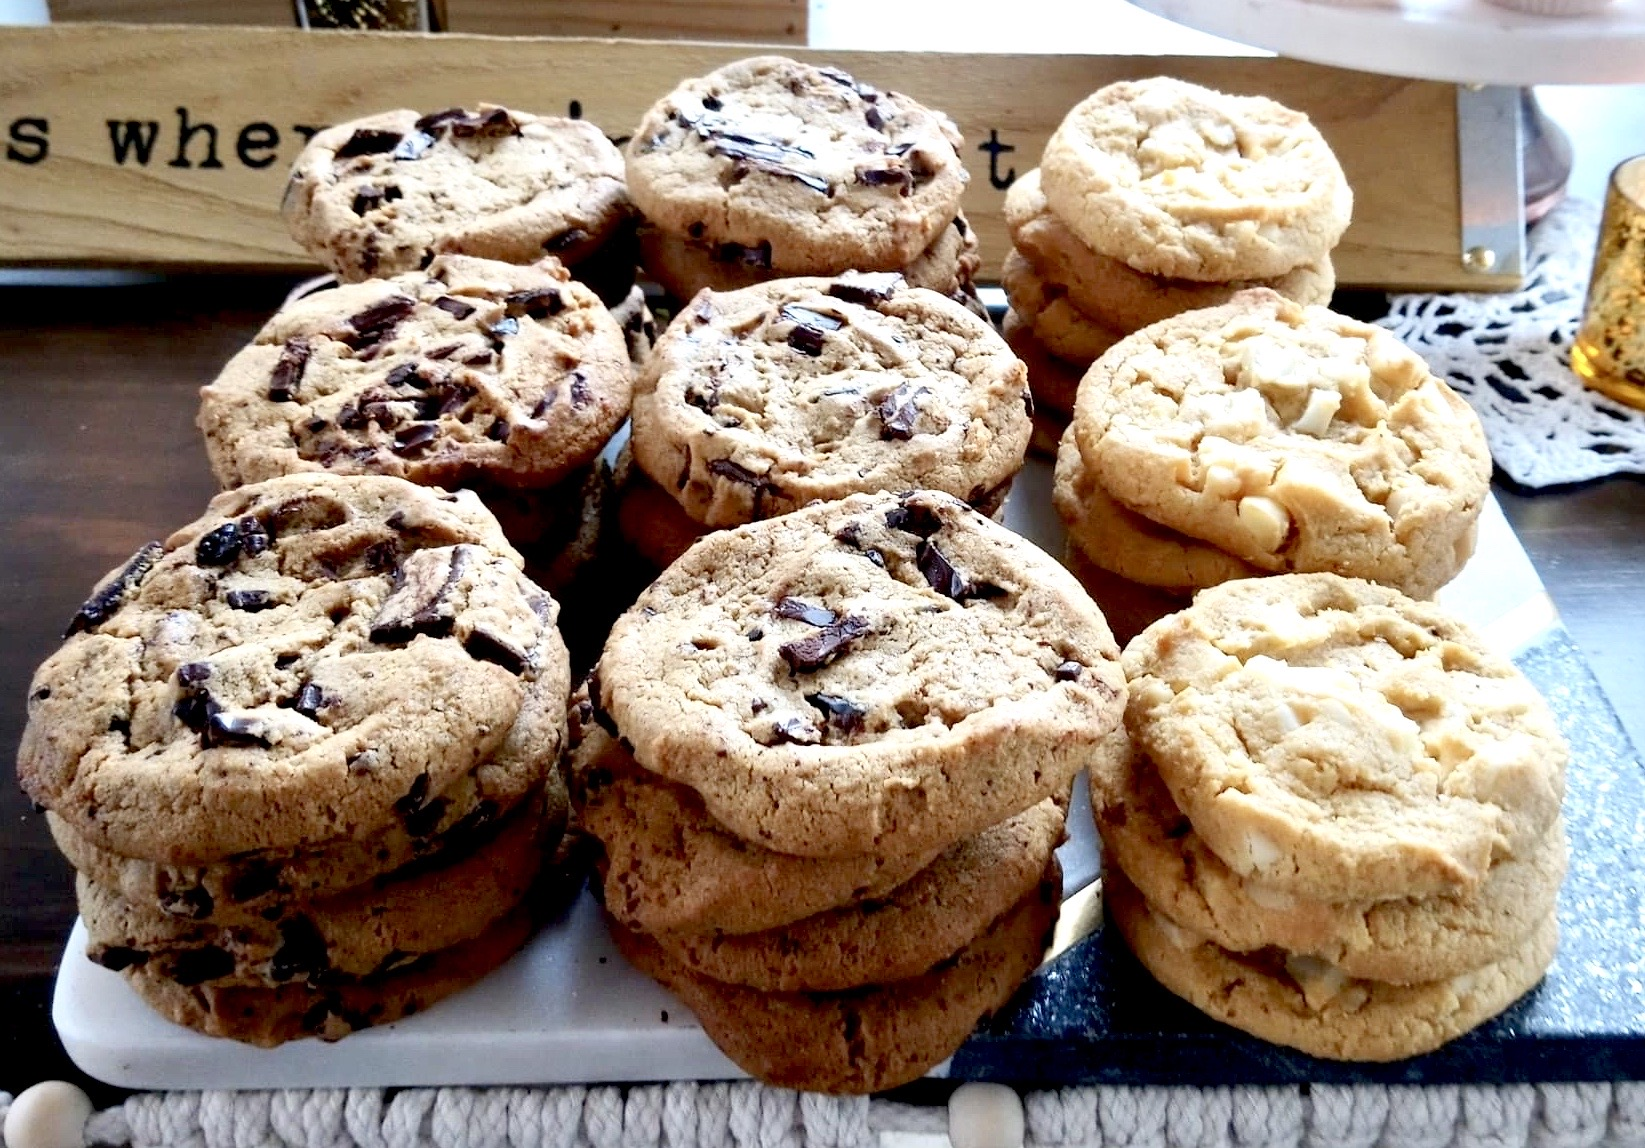 Stacks of Cookies